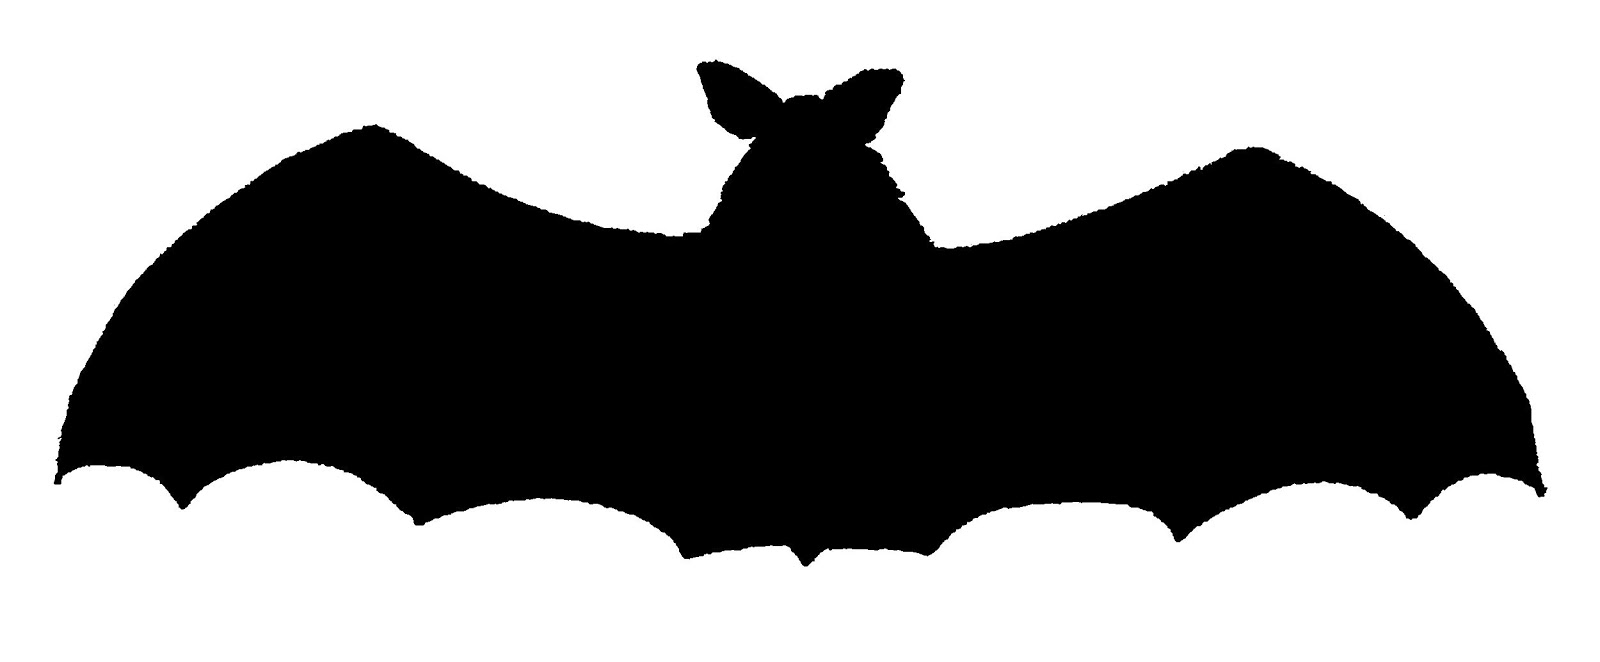 scary halloween bat silhouette images png